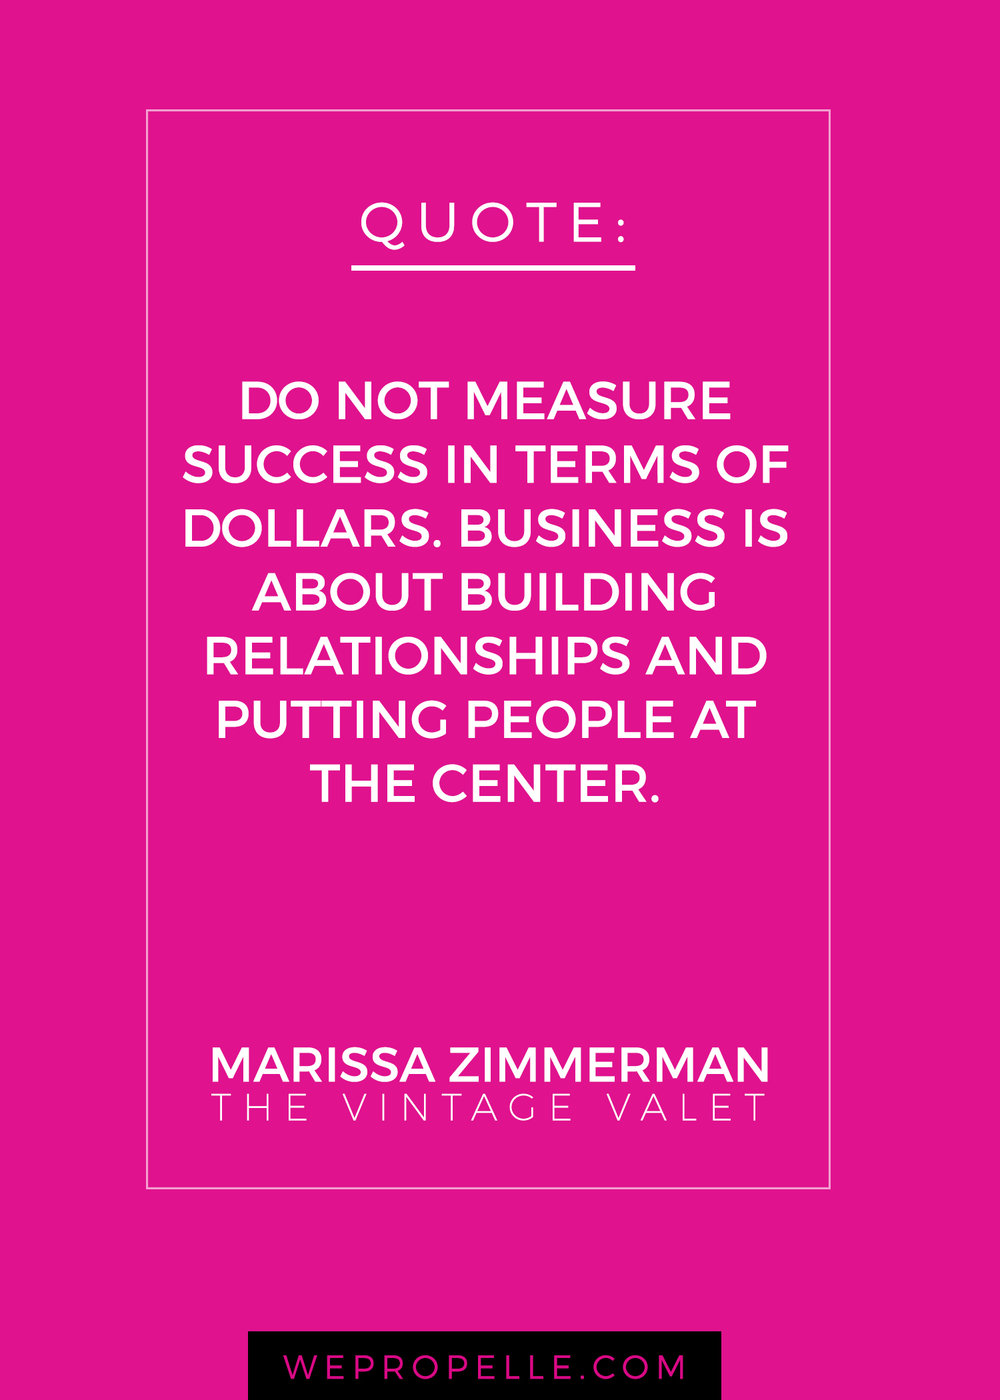 """Do not measure success in terms of dollars. Business is about building relationships and putting people at the center."" Marissa Zimmerman 